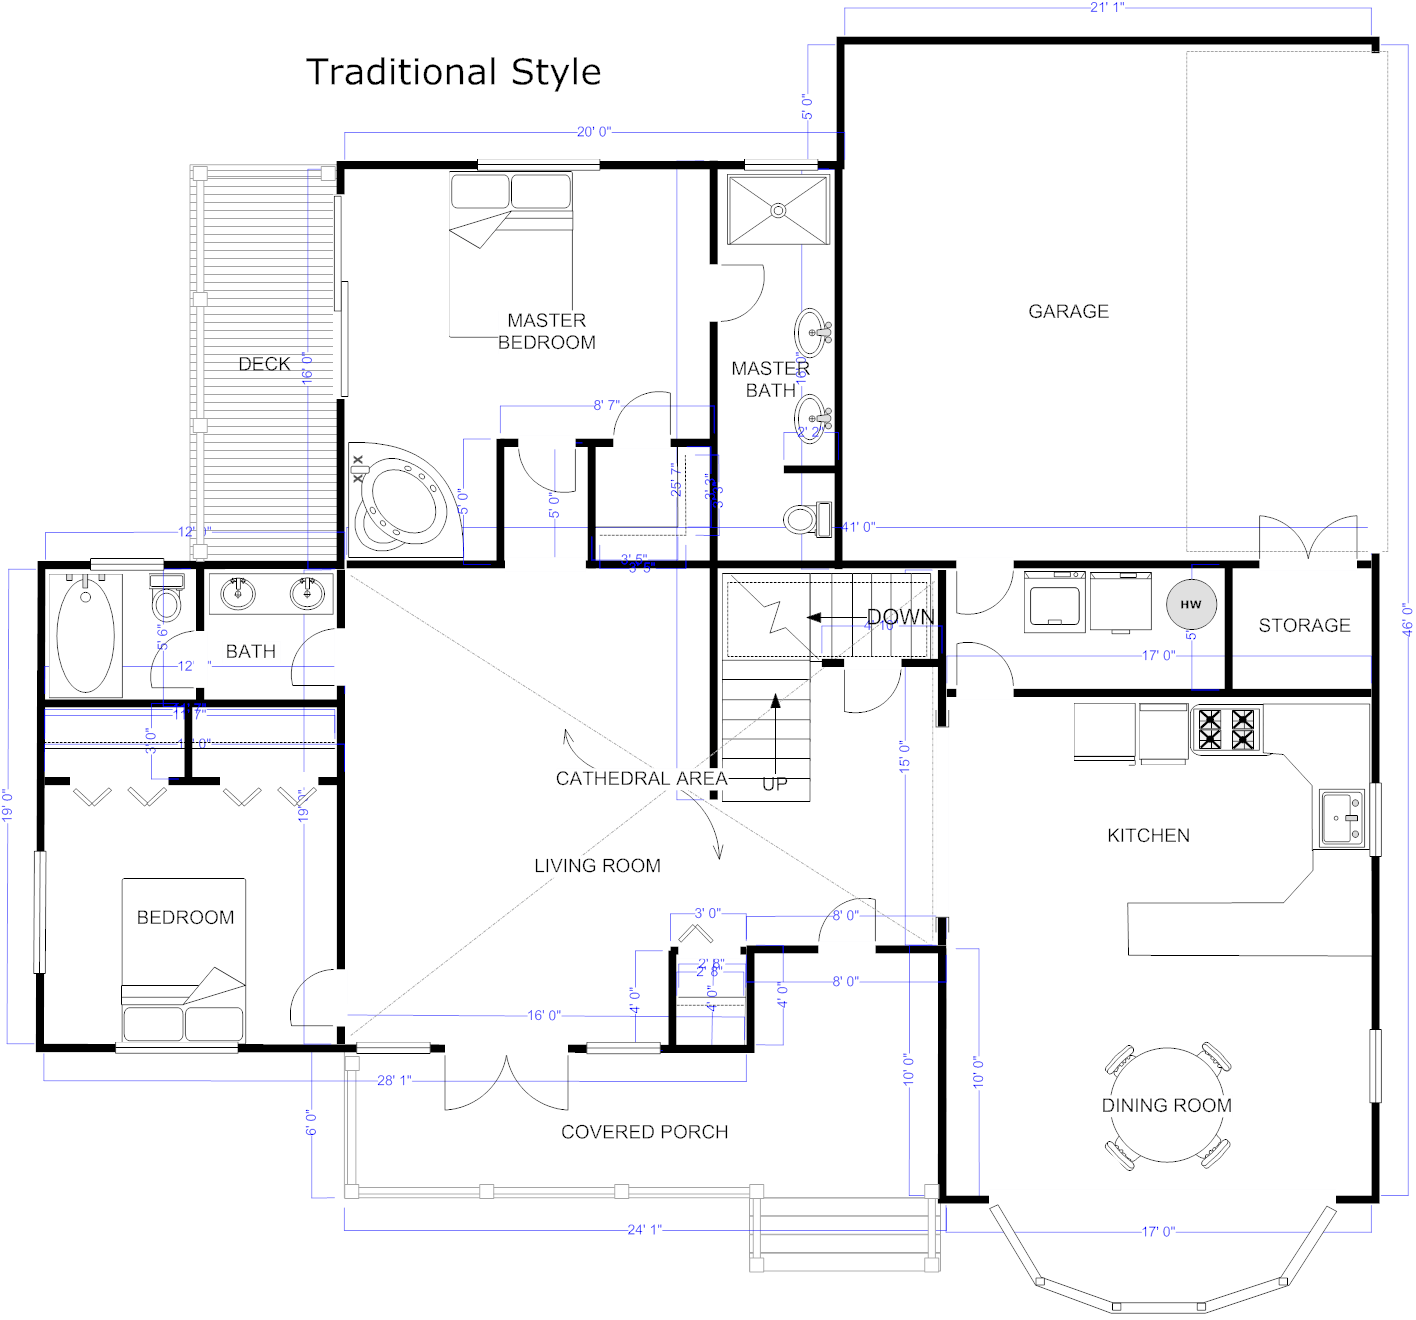 Home Architecture Design Software | Design Ideas